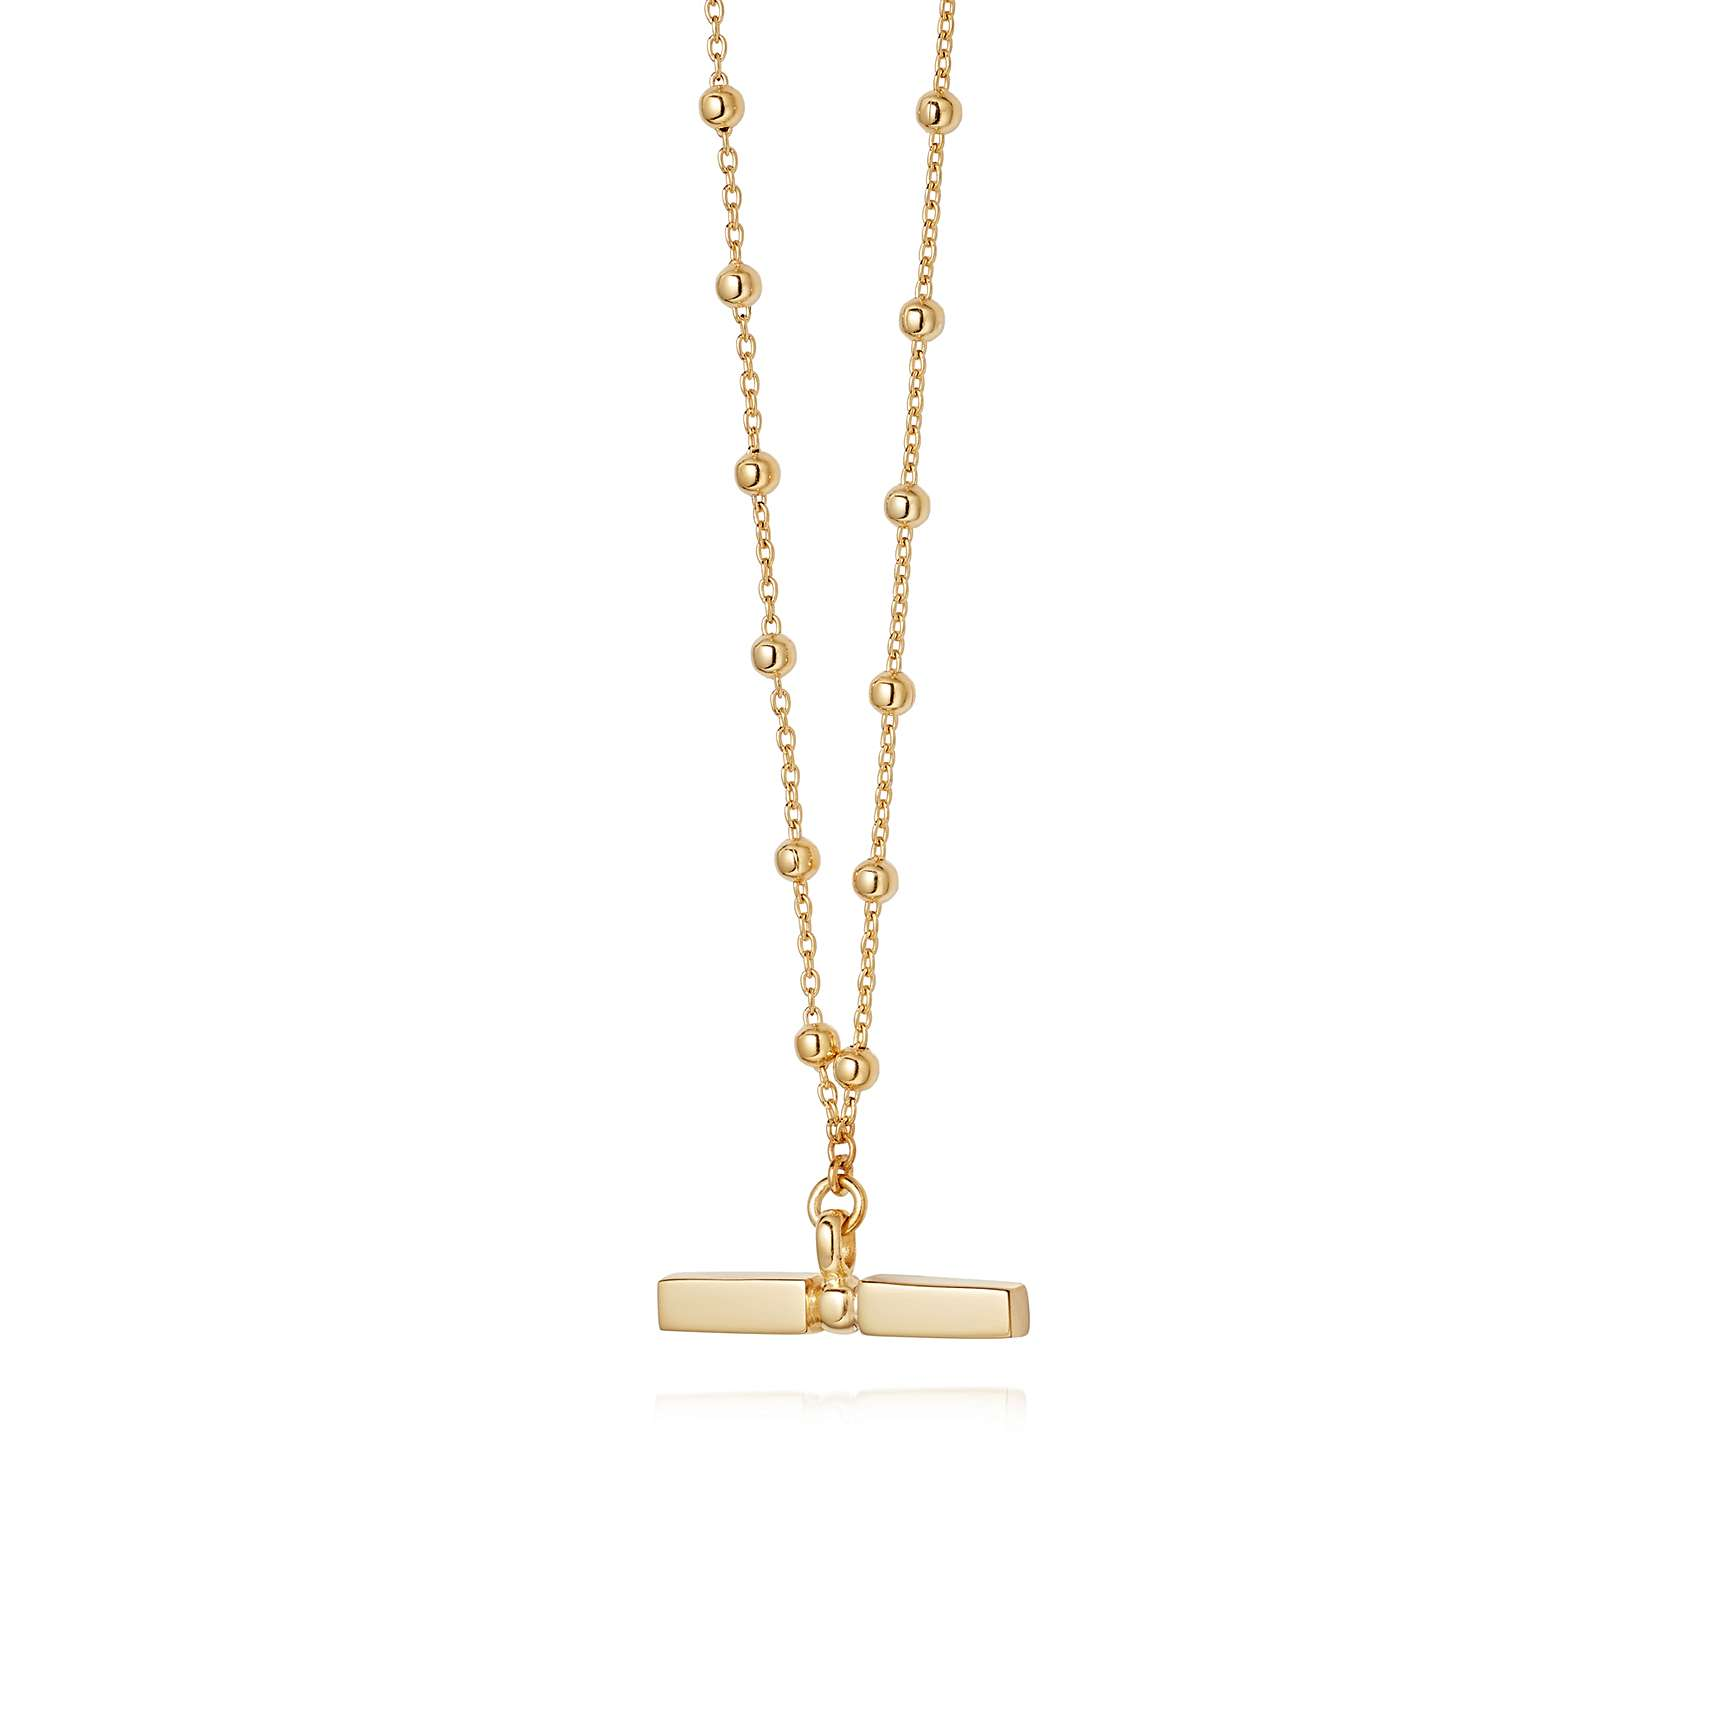 DAISY JEWELLERY STACKED T BAR NECKLACE - I have this one in silver, but the gold is beautiful too.